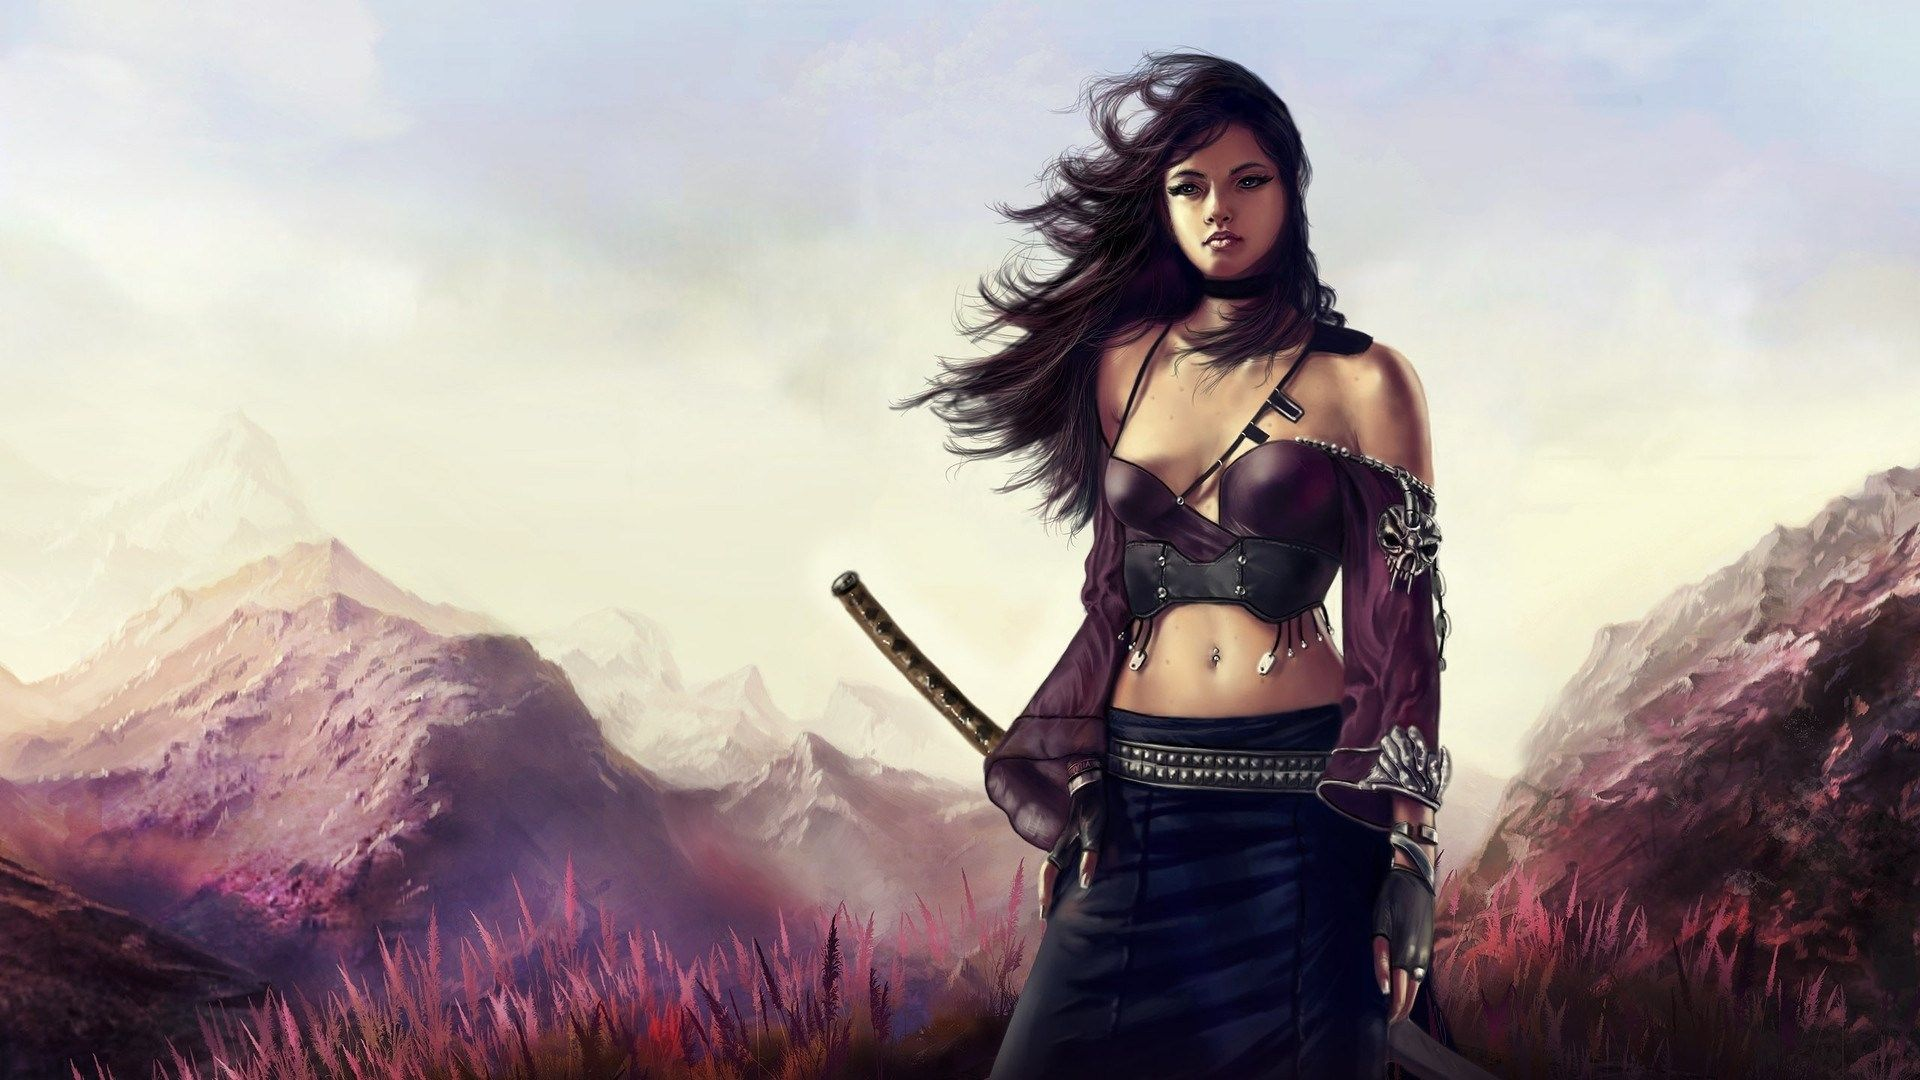 Woman Warrior Wallpapers, PK274 HQFX Woman Warrior Pictures ...